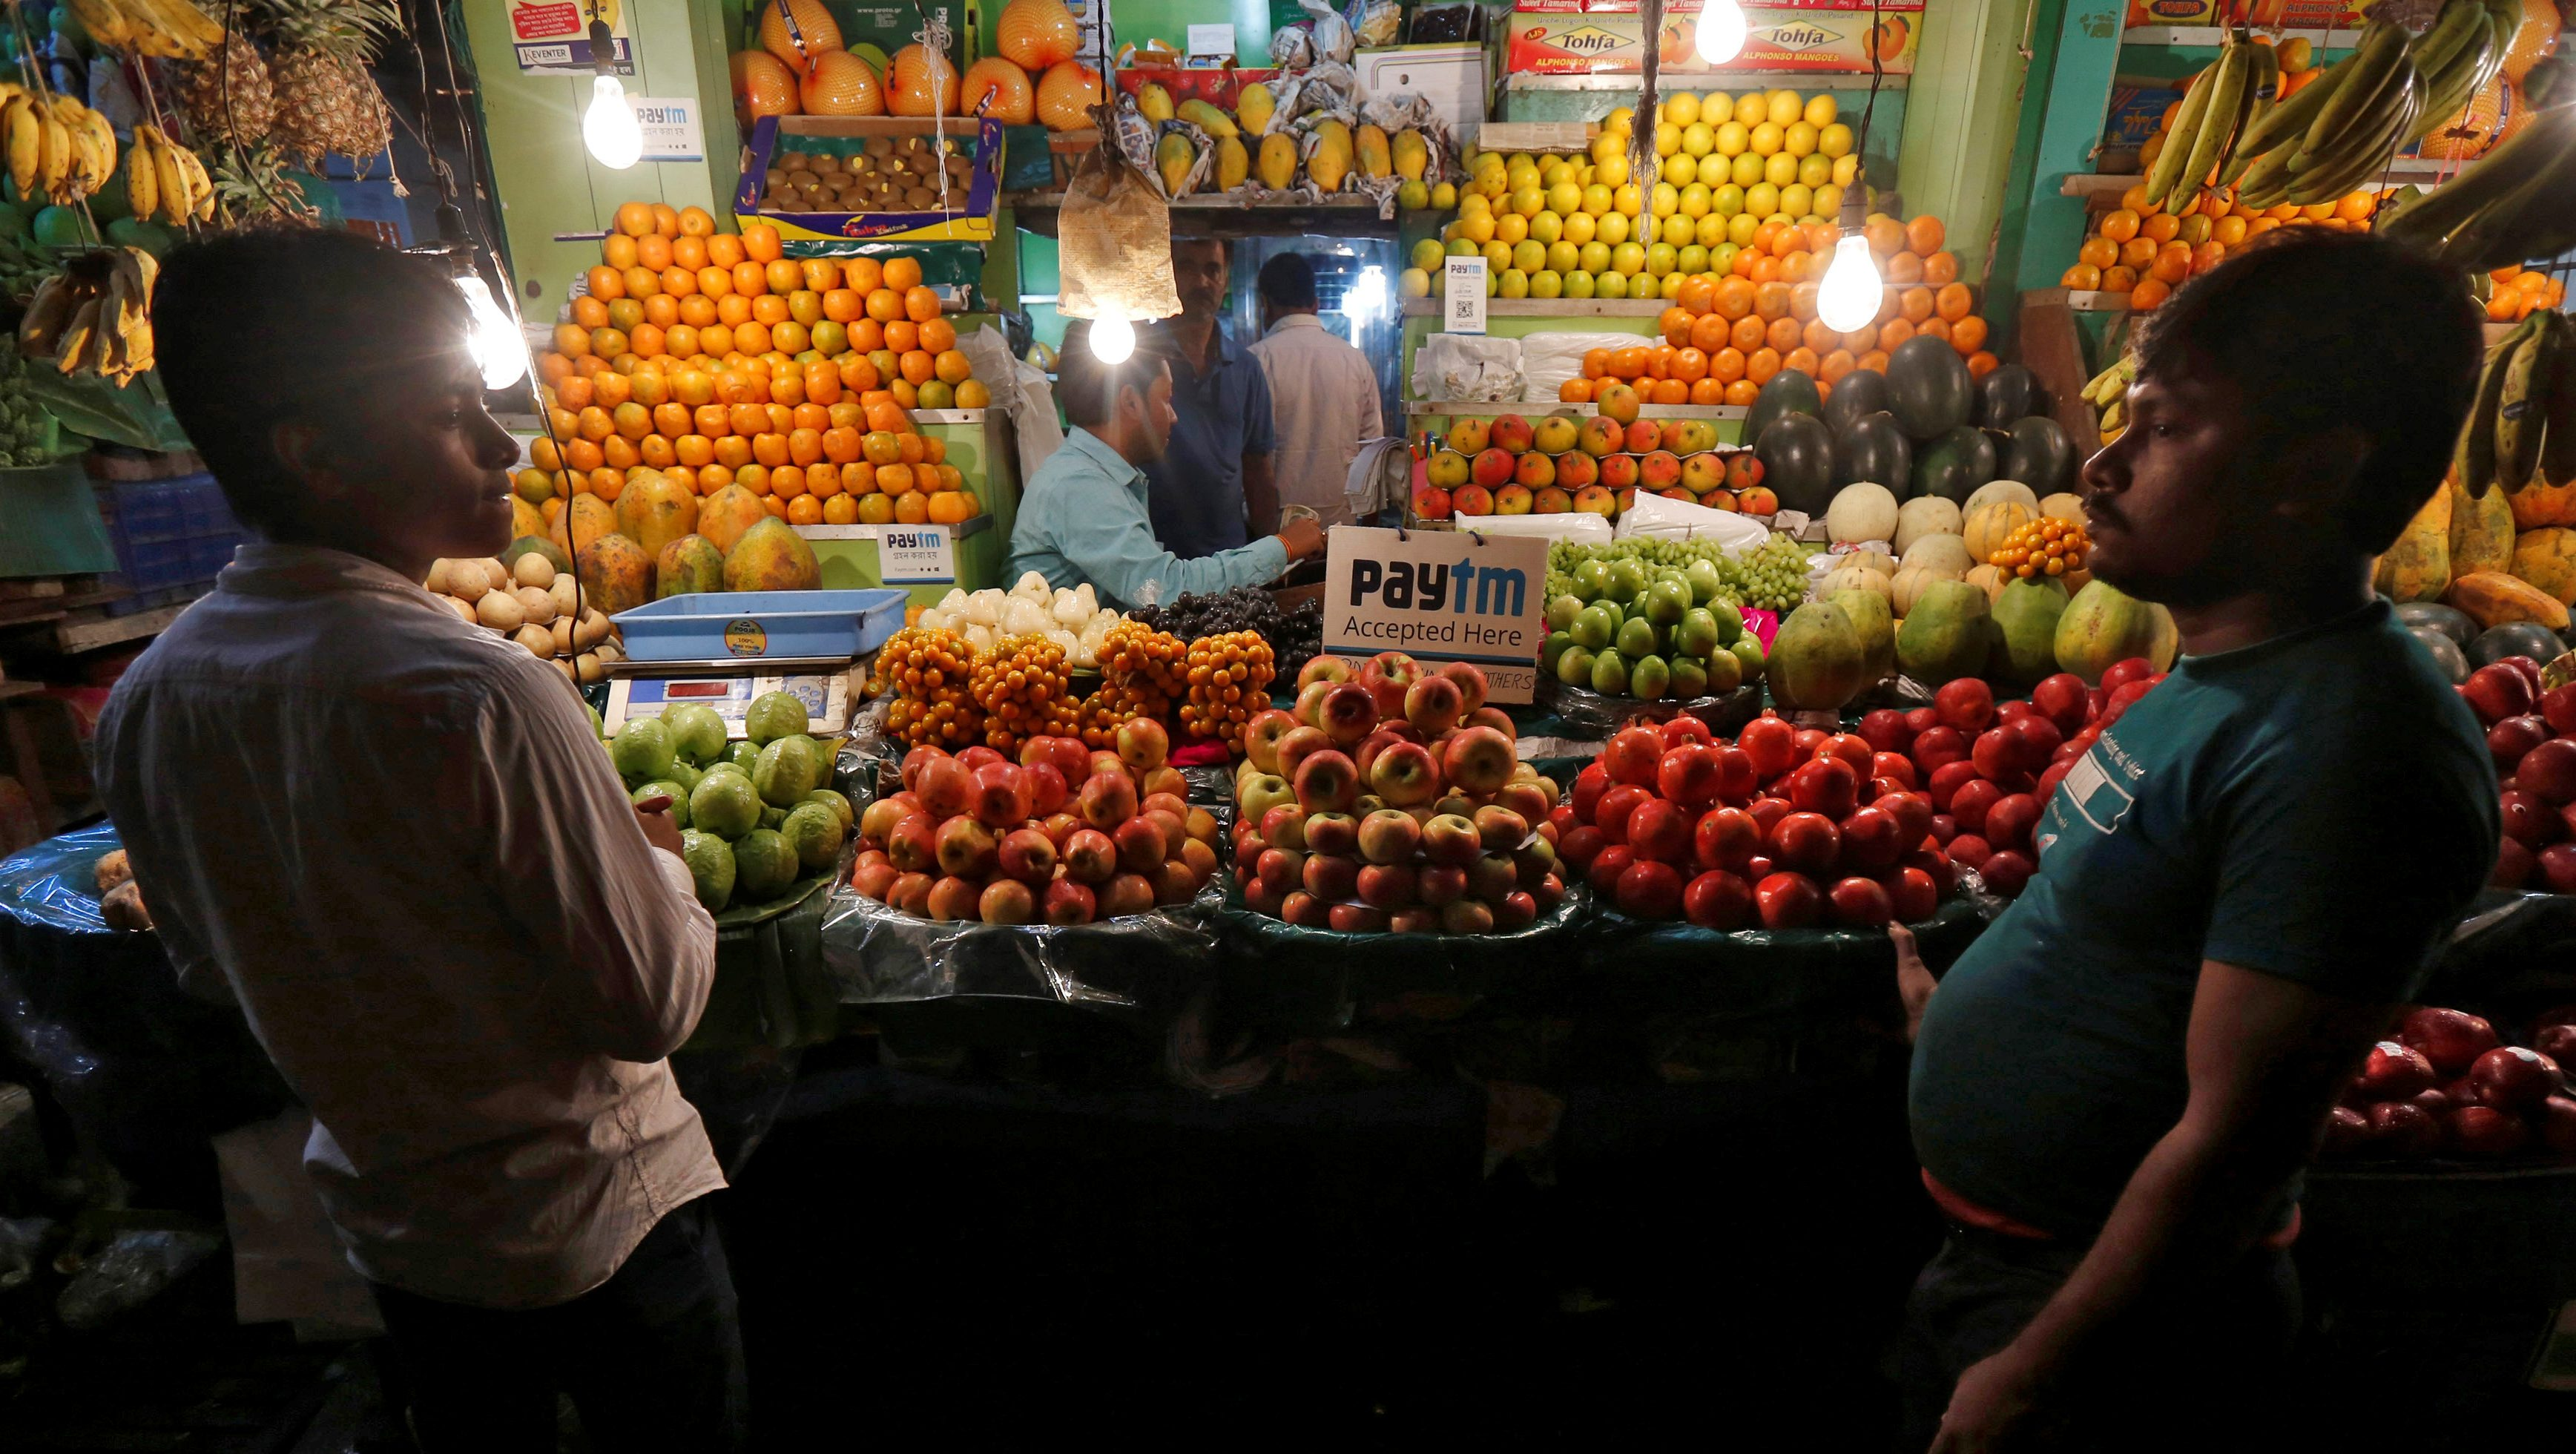 An advertisement of Paytm, a digital wallet company, is seen placed at a fruit stall in Kolkata, India, January 26, 2017. Picture taken January 26, 2017.  REUTERS/Rupak De Chowdhuri - RTS127XM